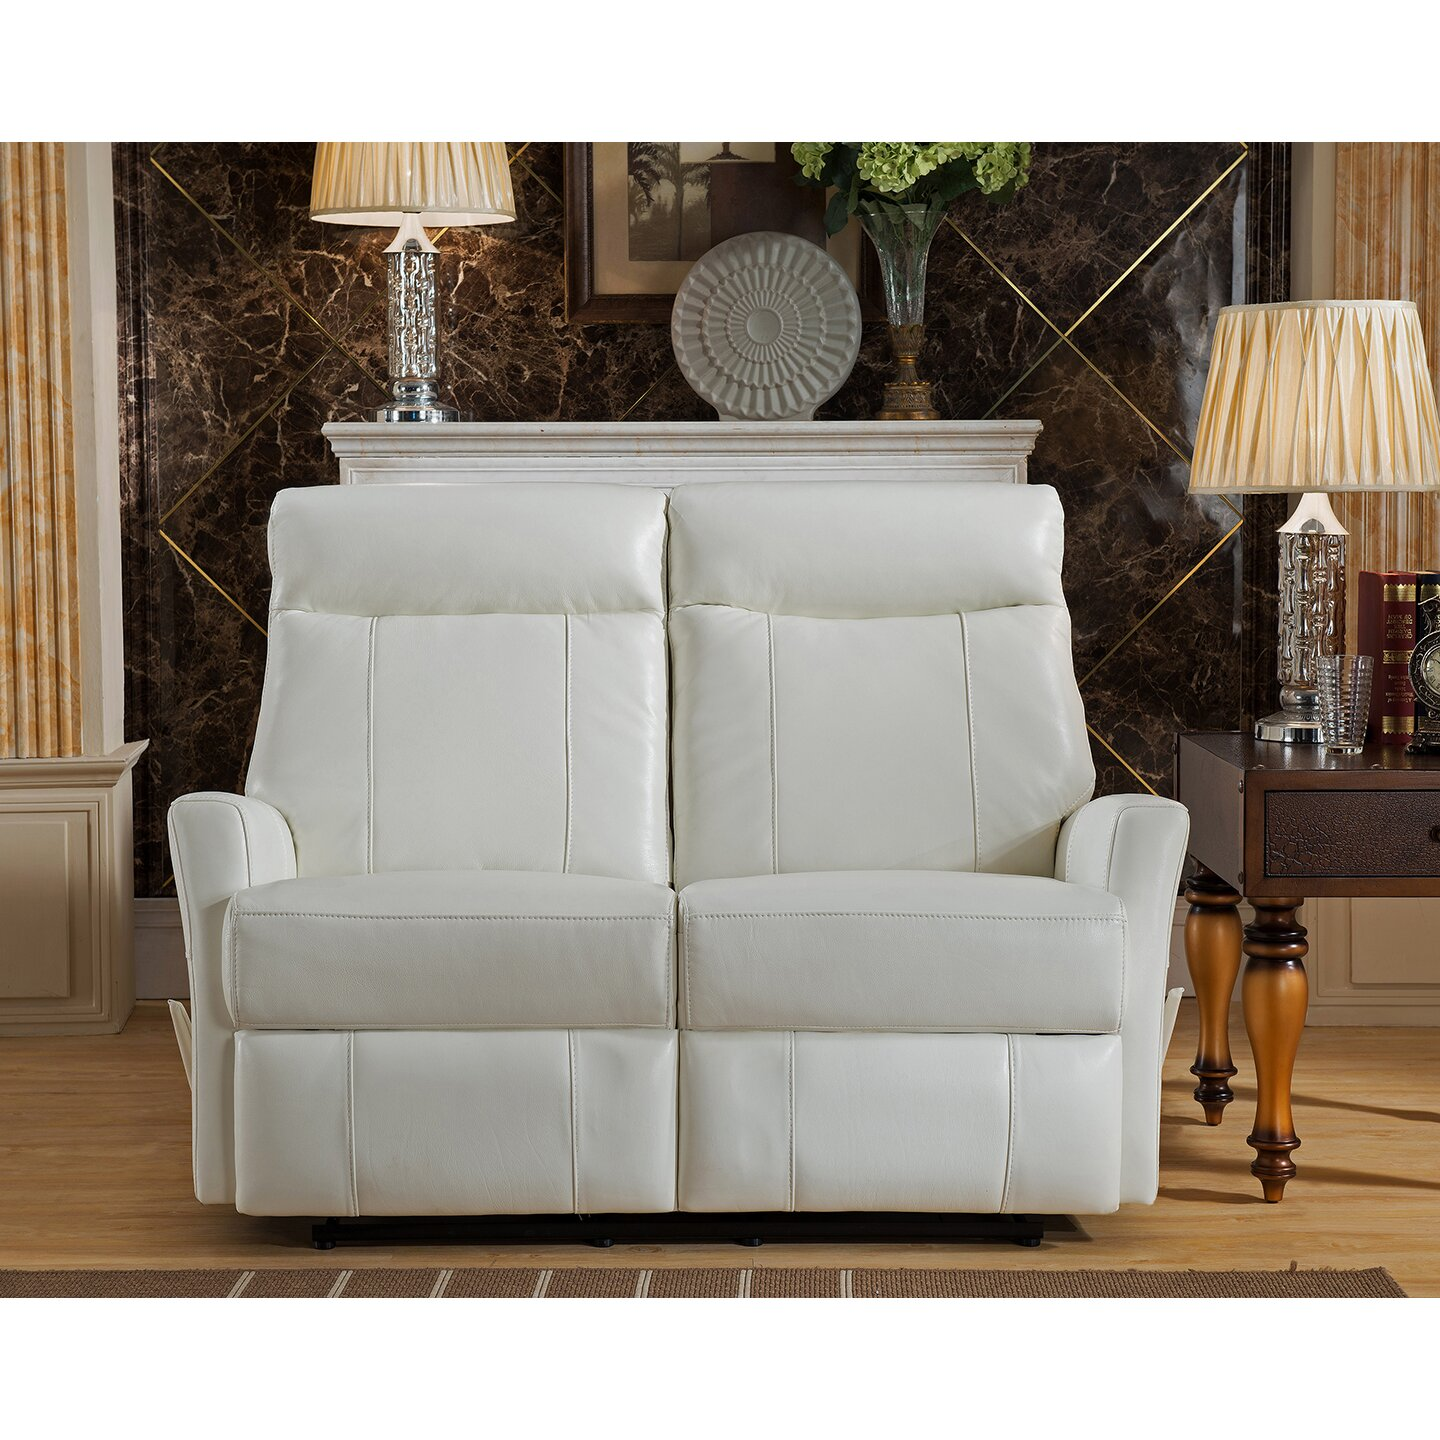 Amax toledo 3 piece leather living room set for 3 piece leather living room set